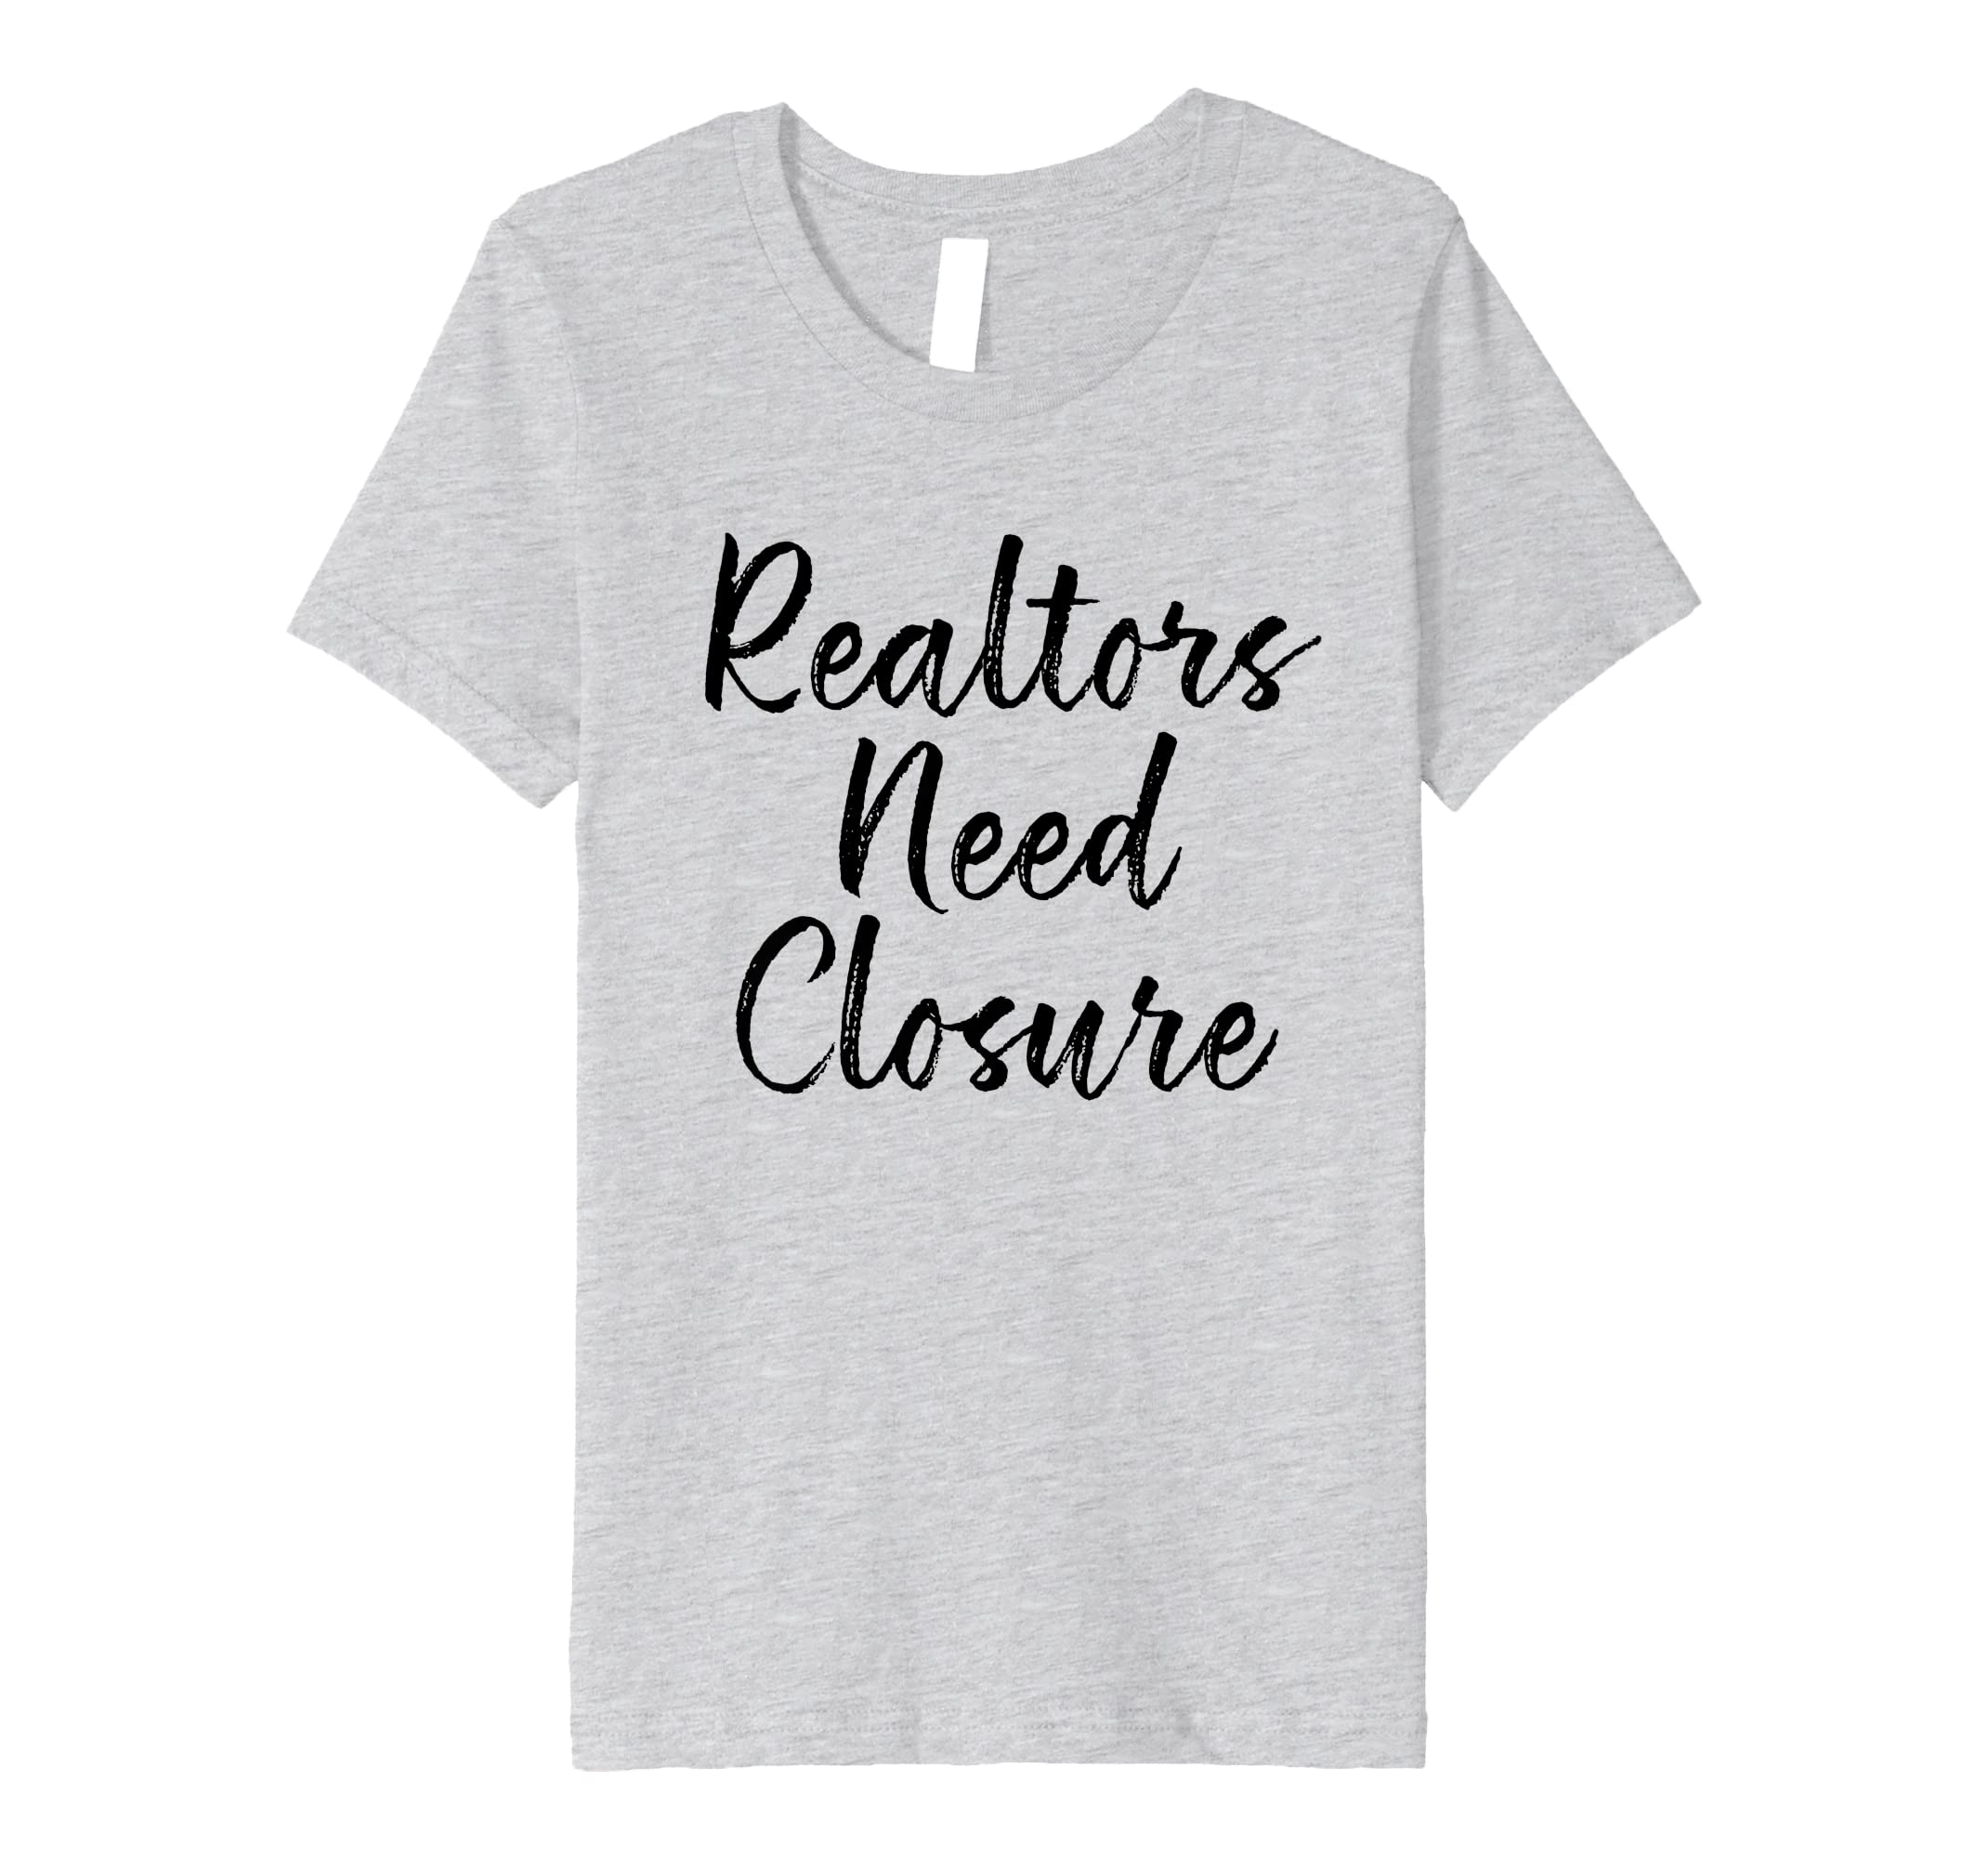 ebfa1c1f8 Amazon.com: Realtors Need Closure Tee, Real Estate, Funny Realtor Shirts:  Clothing